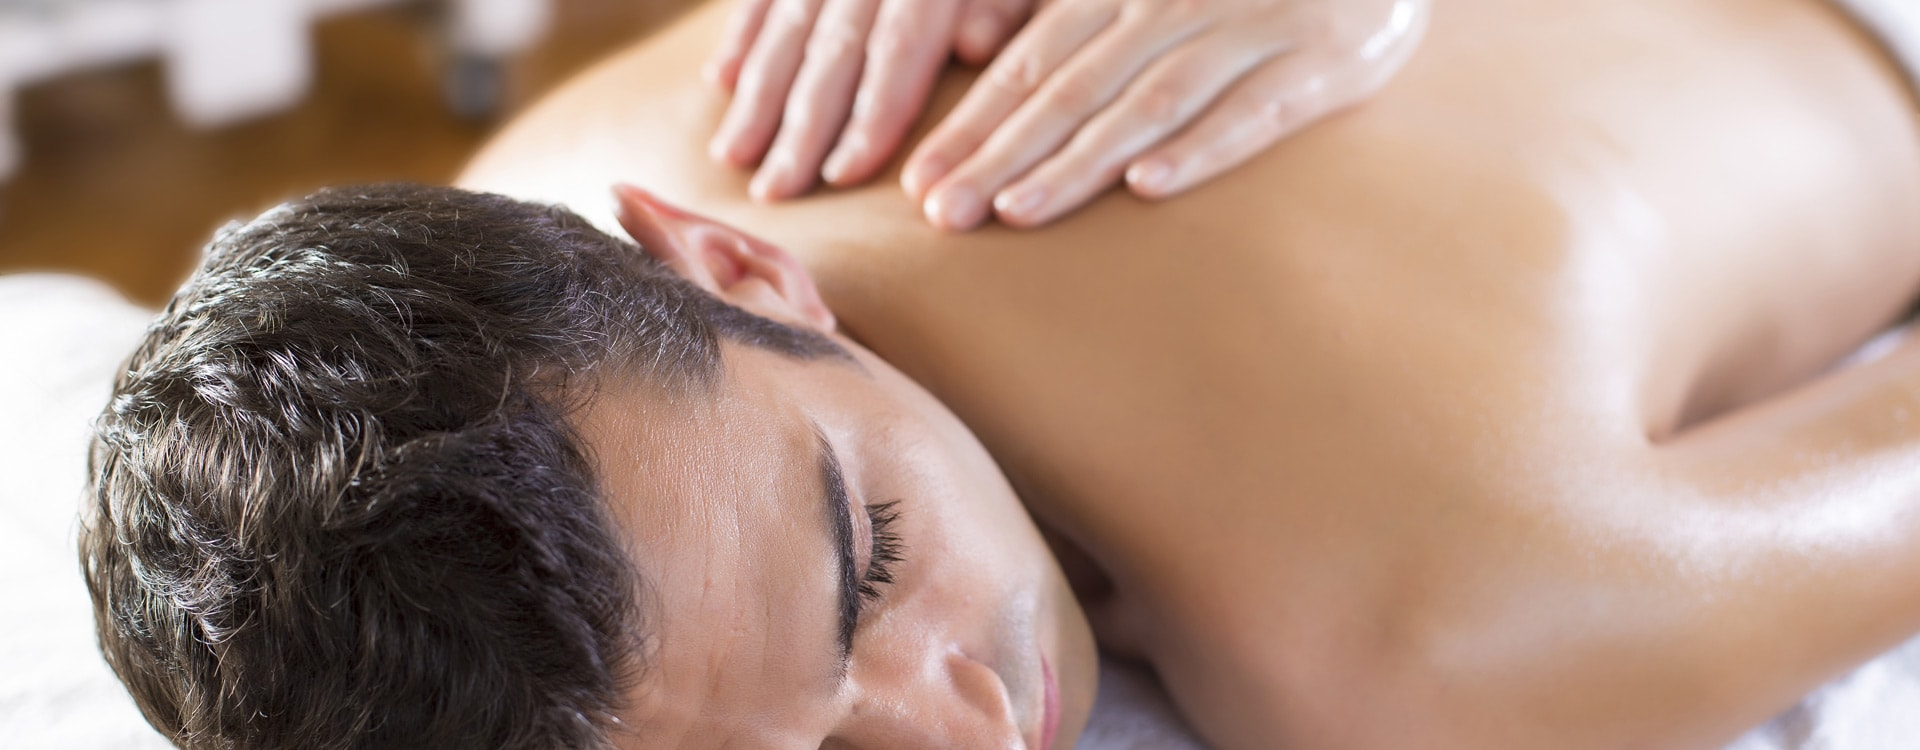 Specialists in Massage Therapy